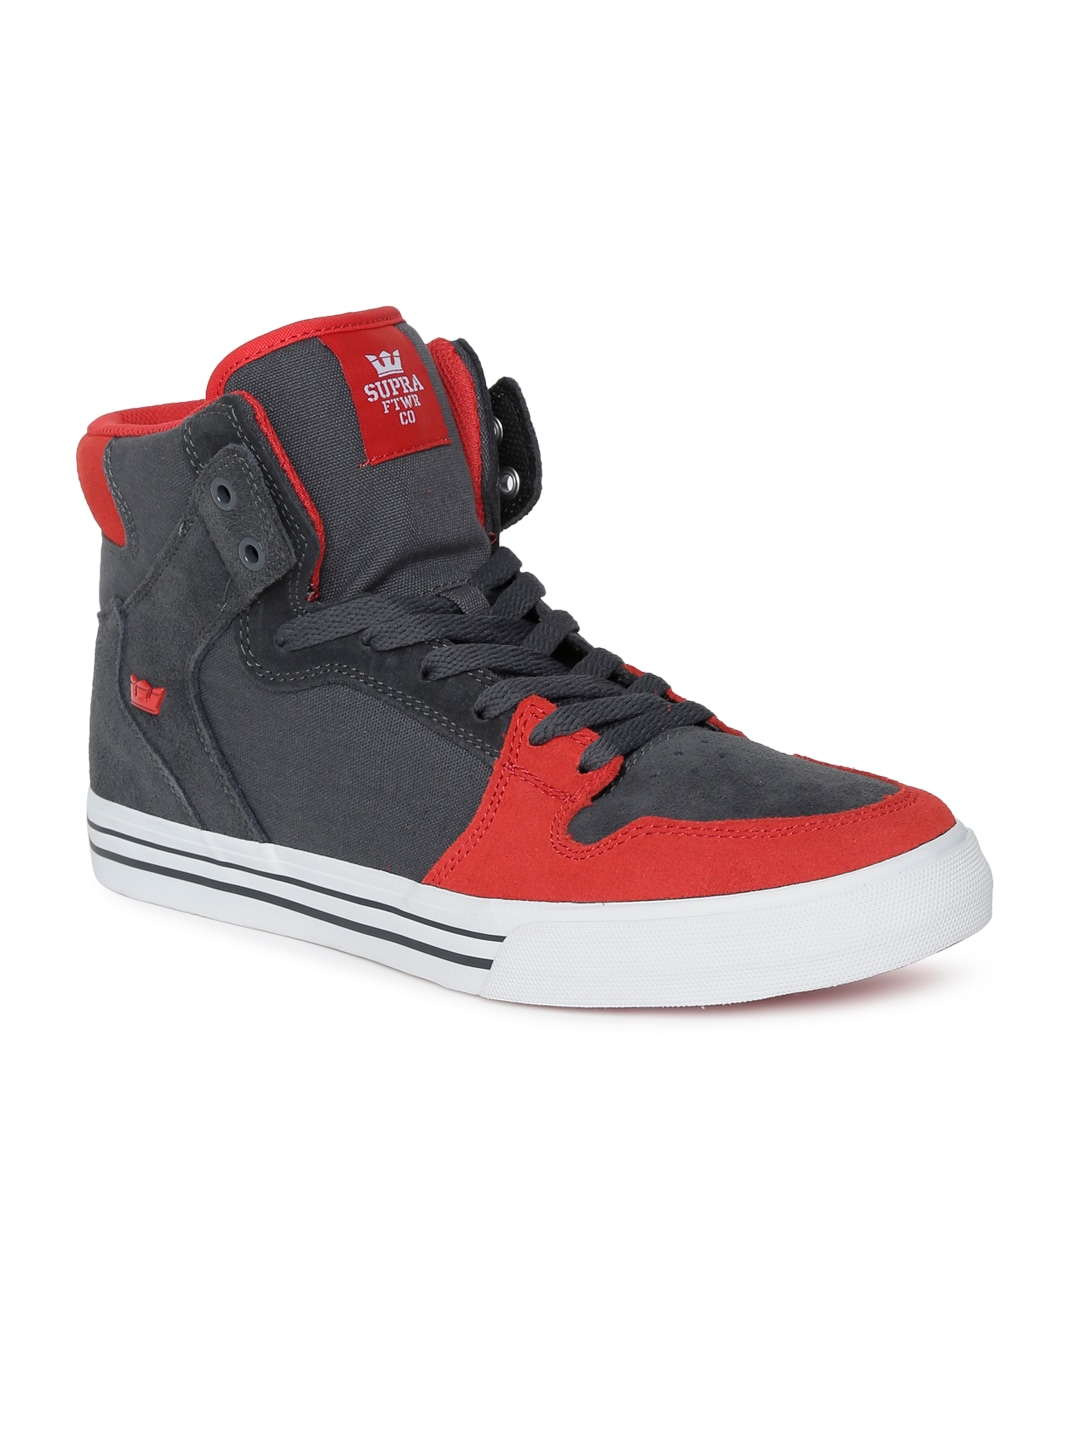 9e9eaae06883 Supra - Exclusive Supra Online Store in India at Myntra